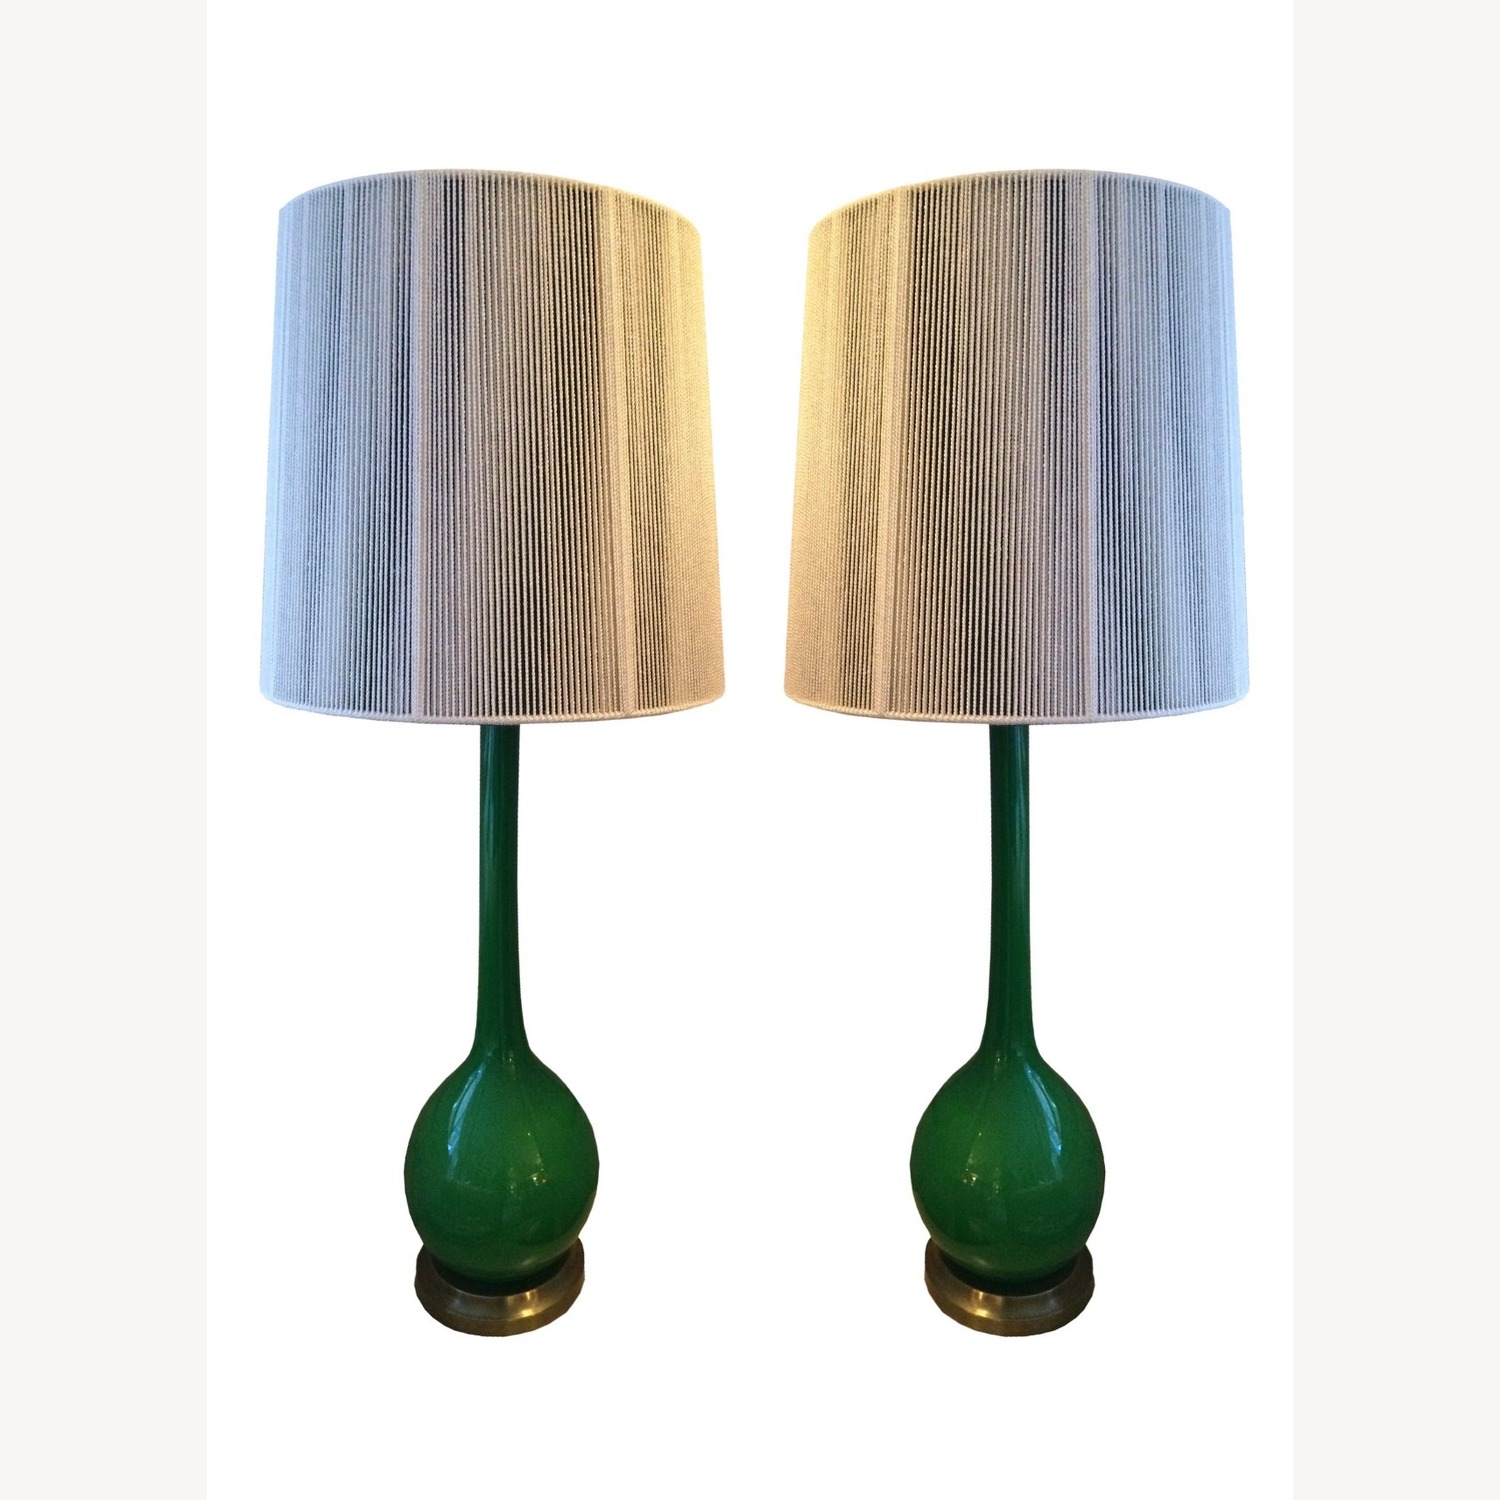 Pair of 1960s Green Glass Venetian Lamps with Custom Shades - image-0